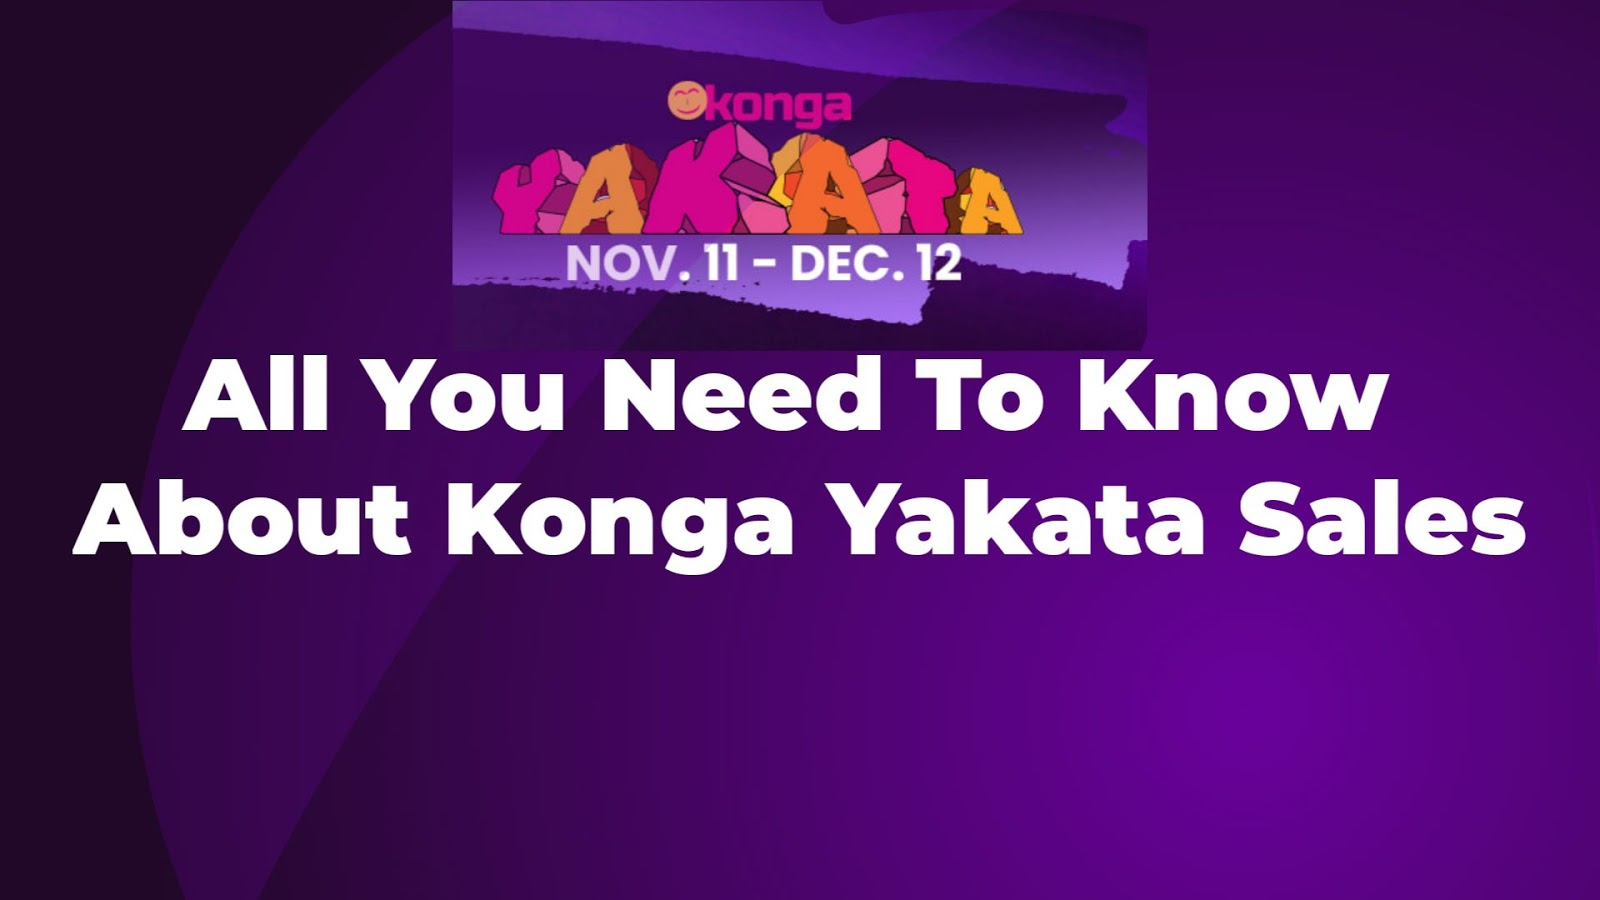 All You Need To Know About Konga Yakata Sales 2020